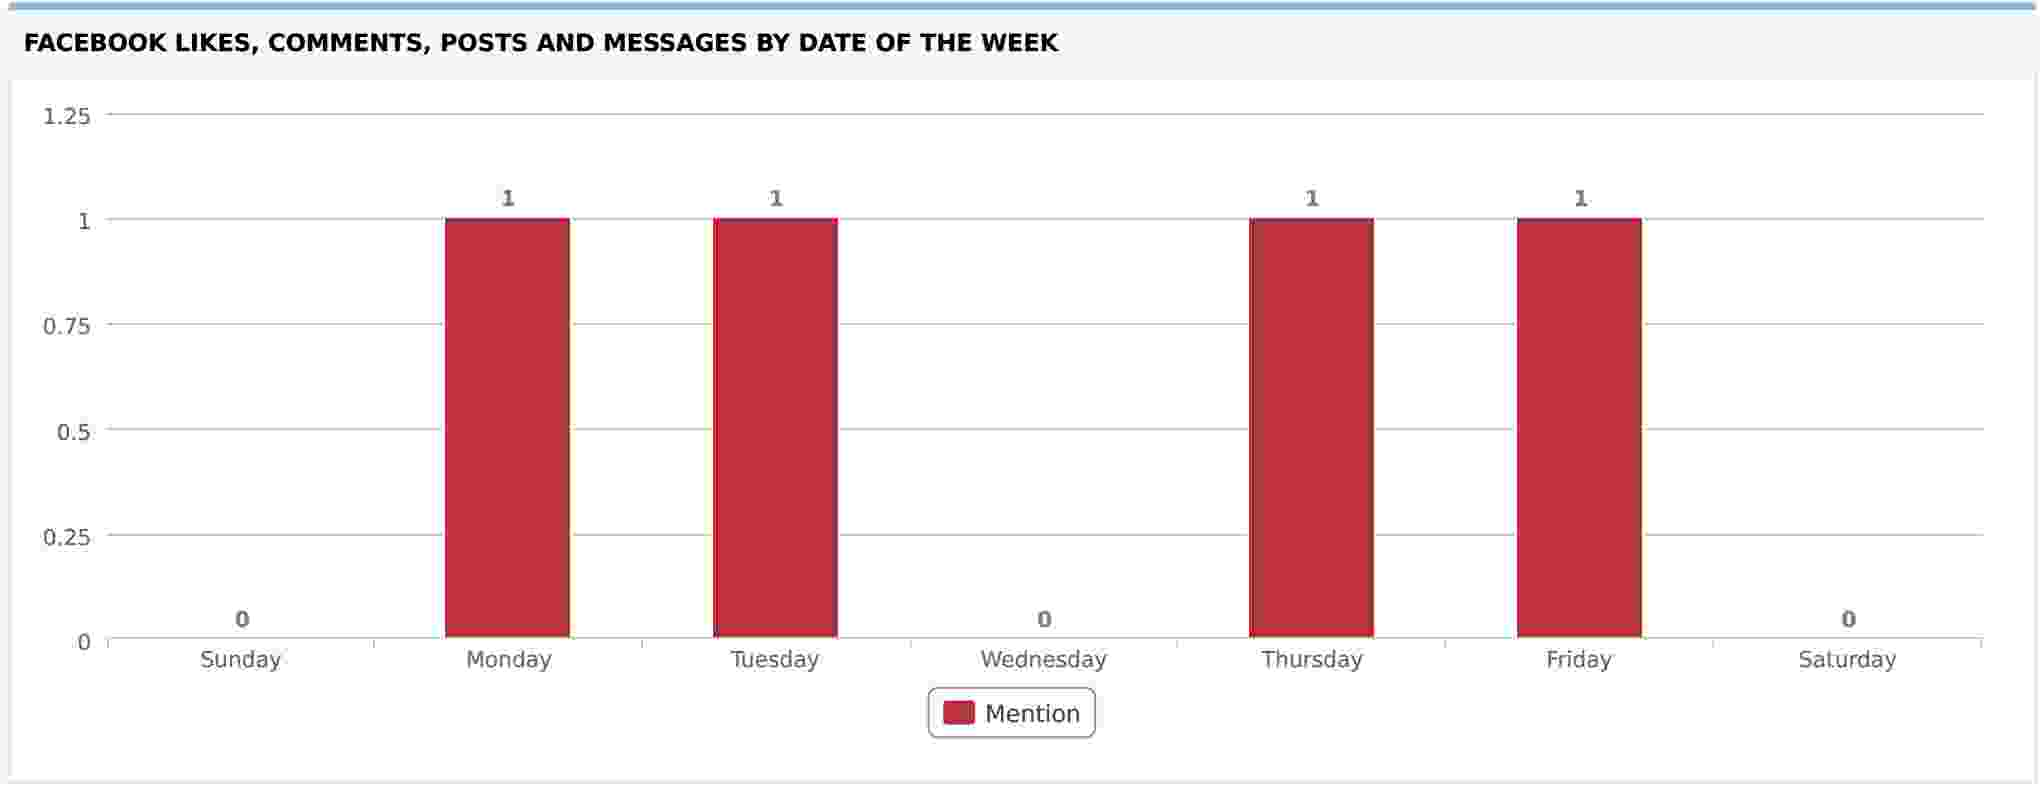 Facebook Likes Comments Posts and Messages by Date of the Week